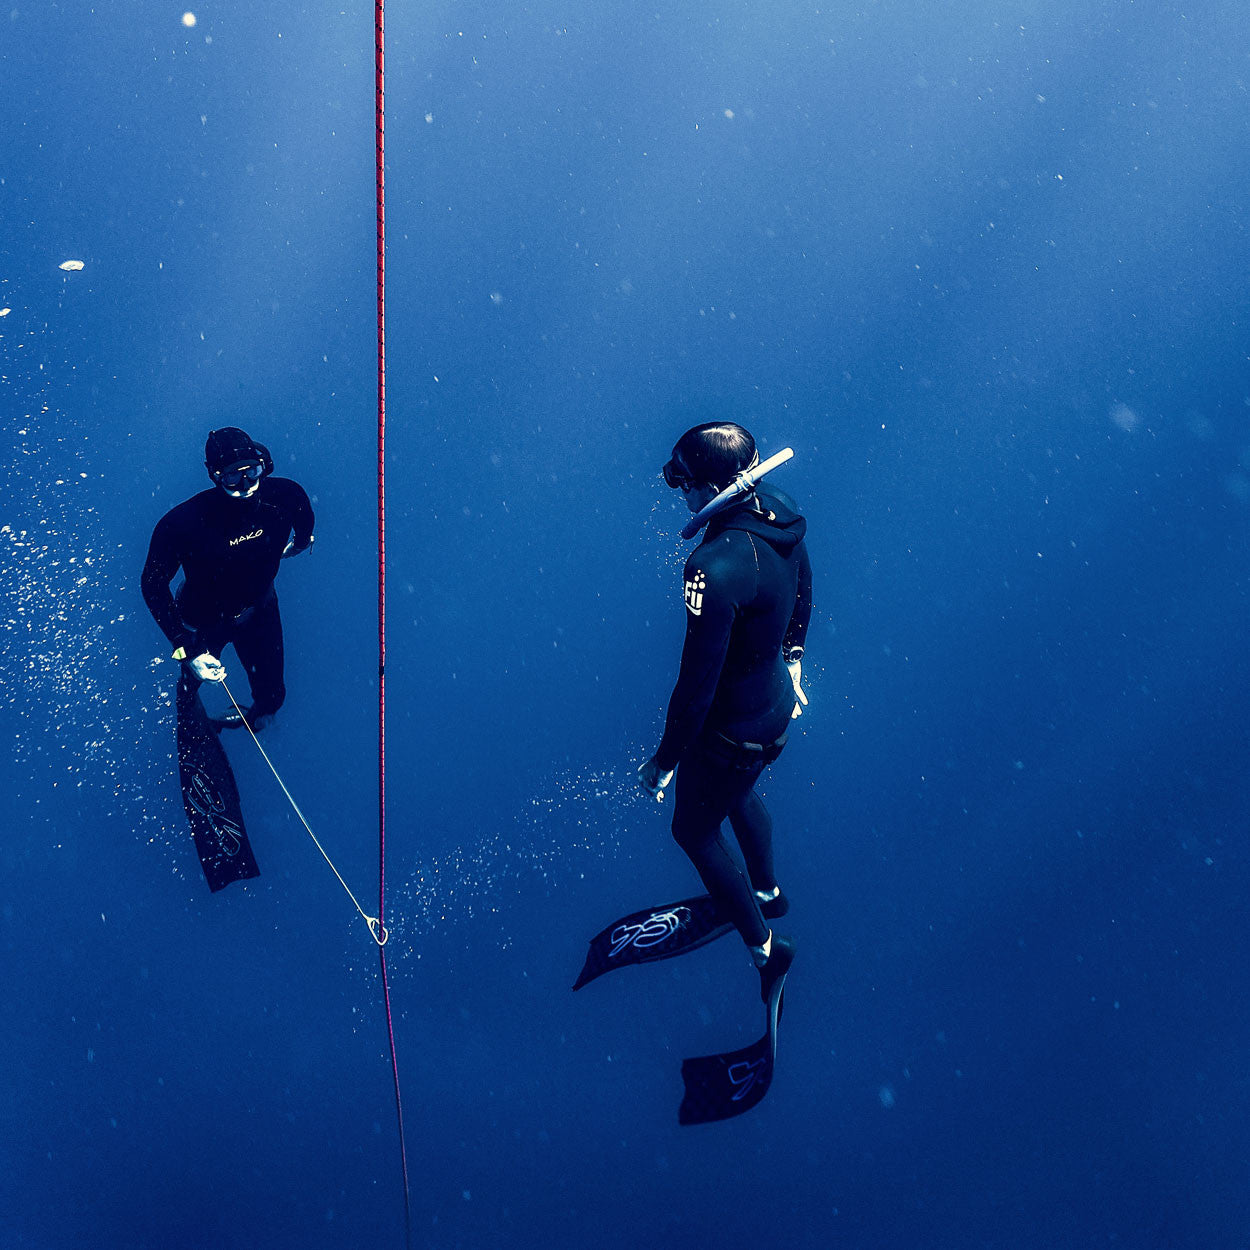 L3 Freediver with lanyard